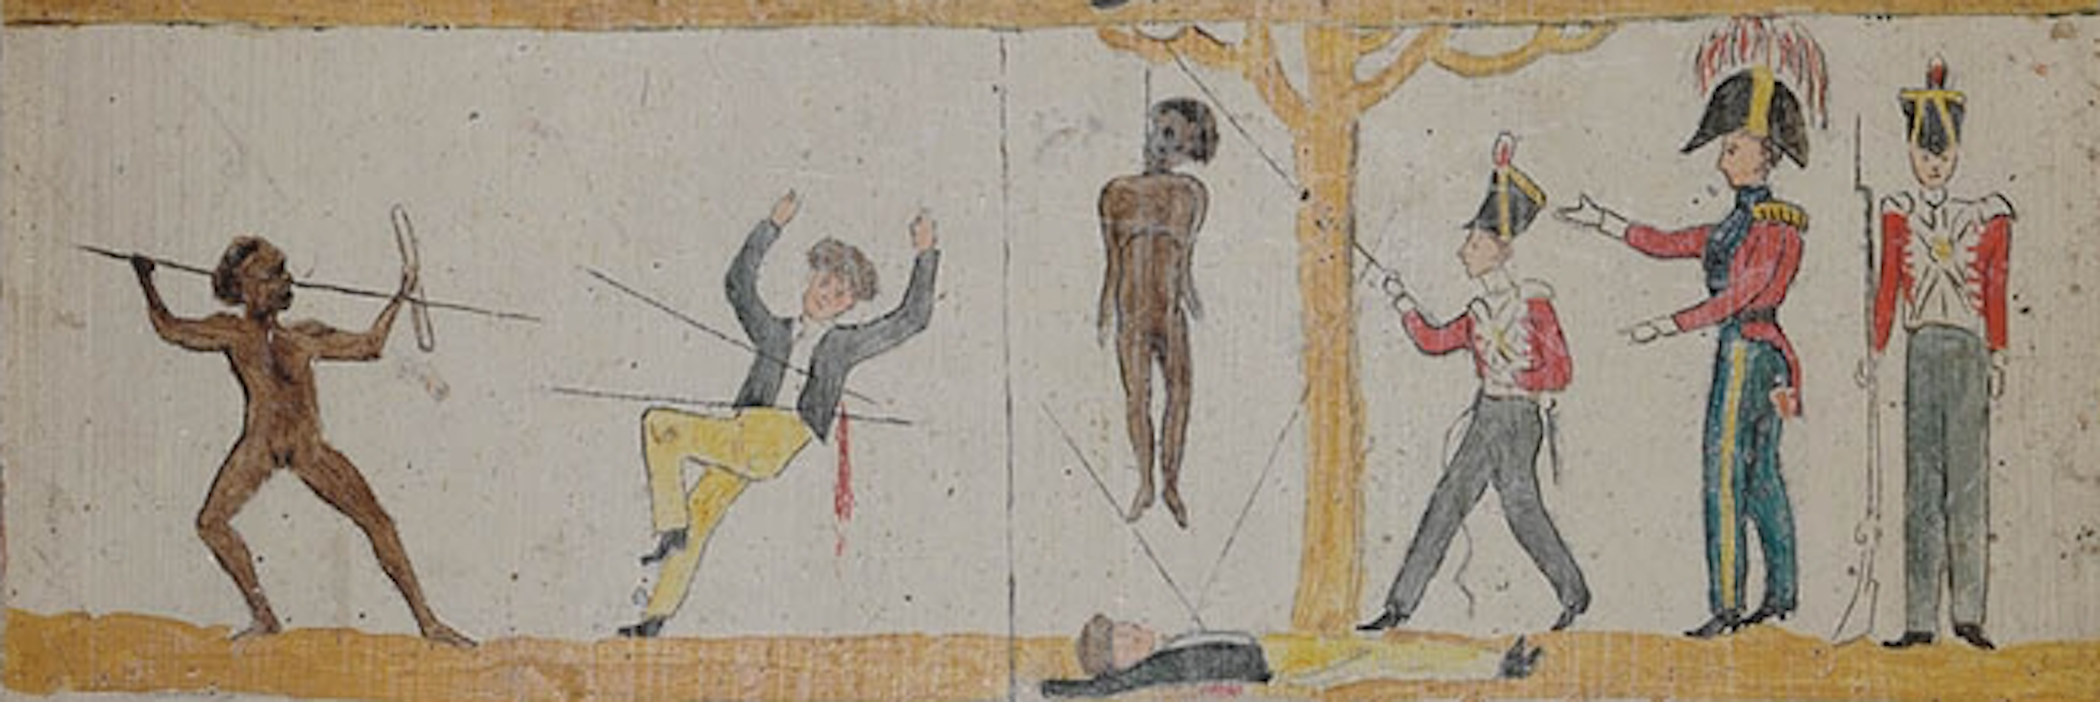 Image of the third section of Second section of Governor Arthur's Proclamation to the Aborigines